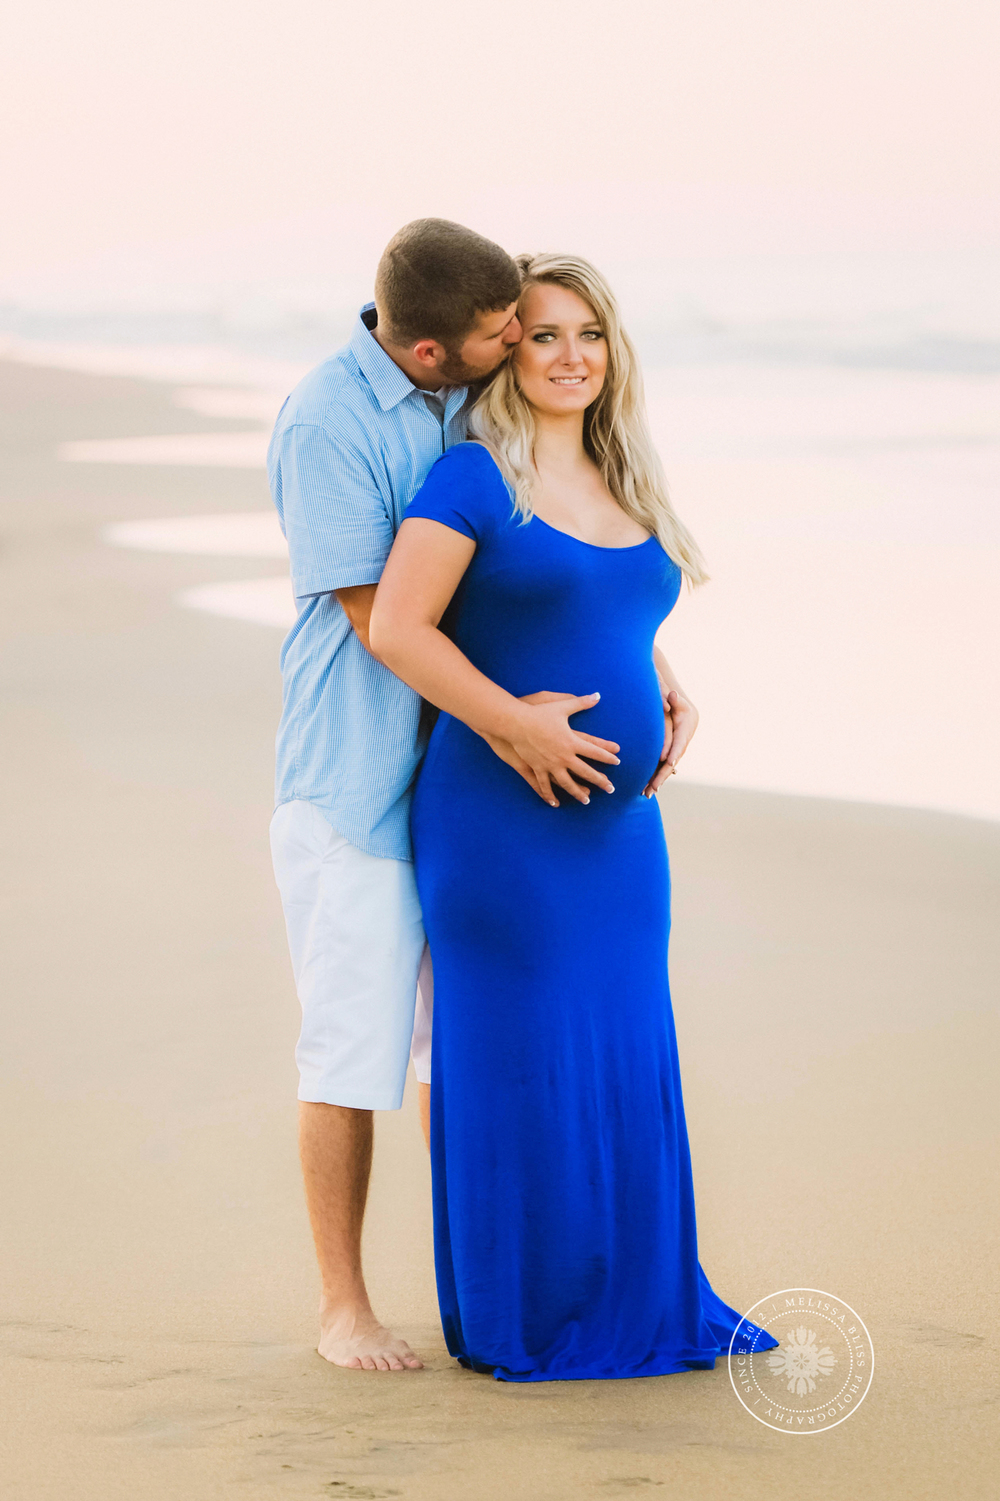 maternity-photo-session-virginia-beach-va-photographers-melissa-bliss-photography-norfolk-chesapeake-photographer.jpg